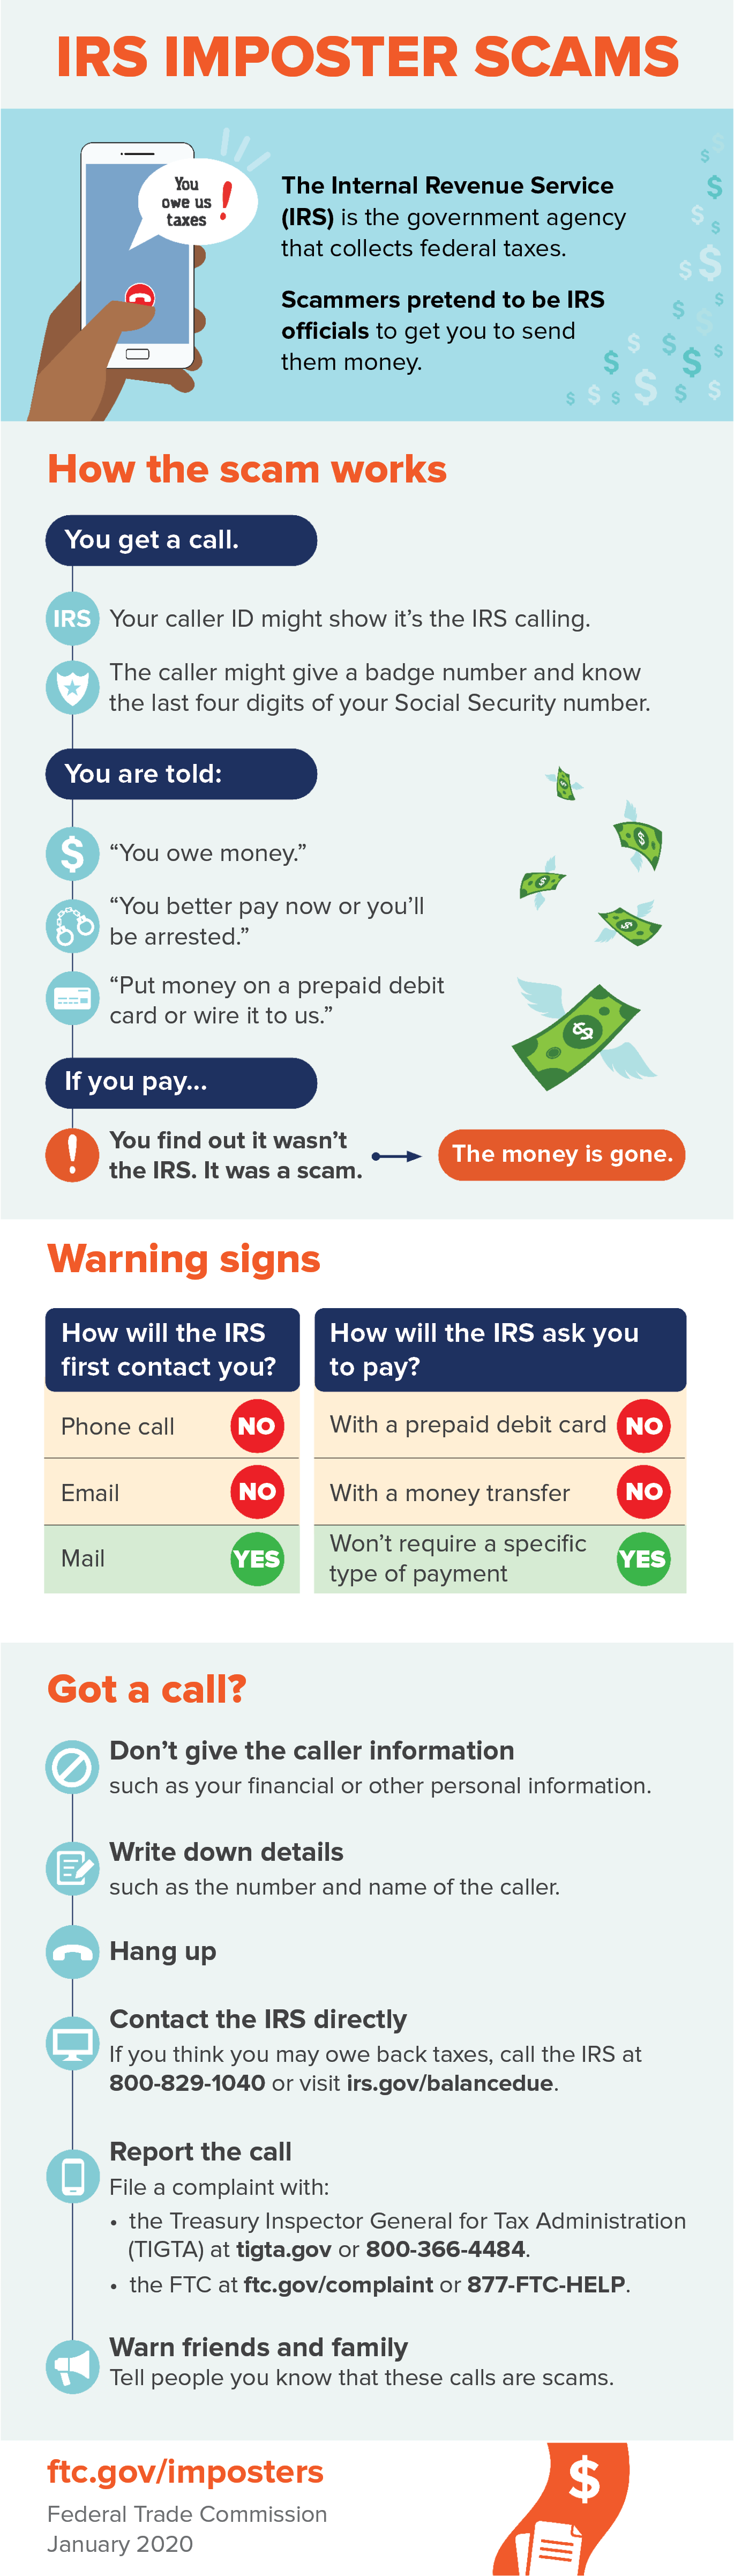 IRS Imposter Scams: Scammers pretend to be IRS officials to get you to send them money.